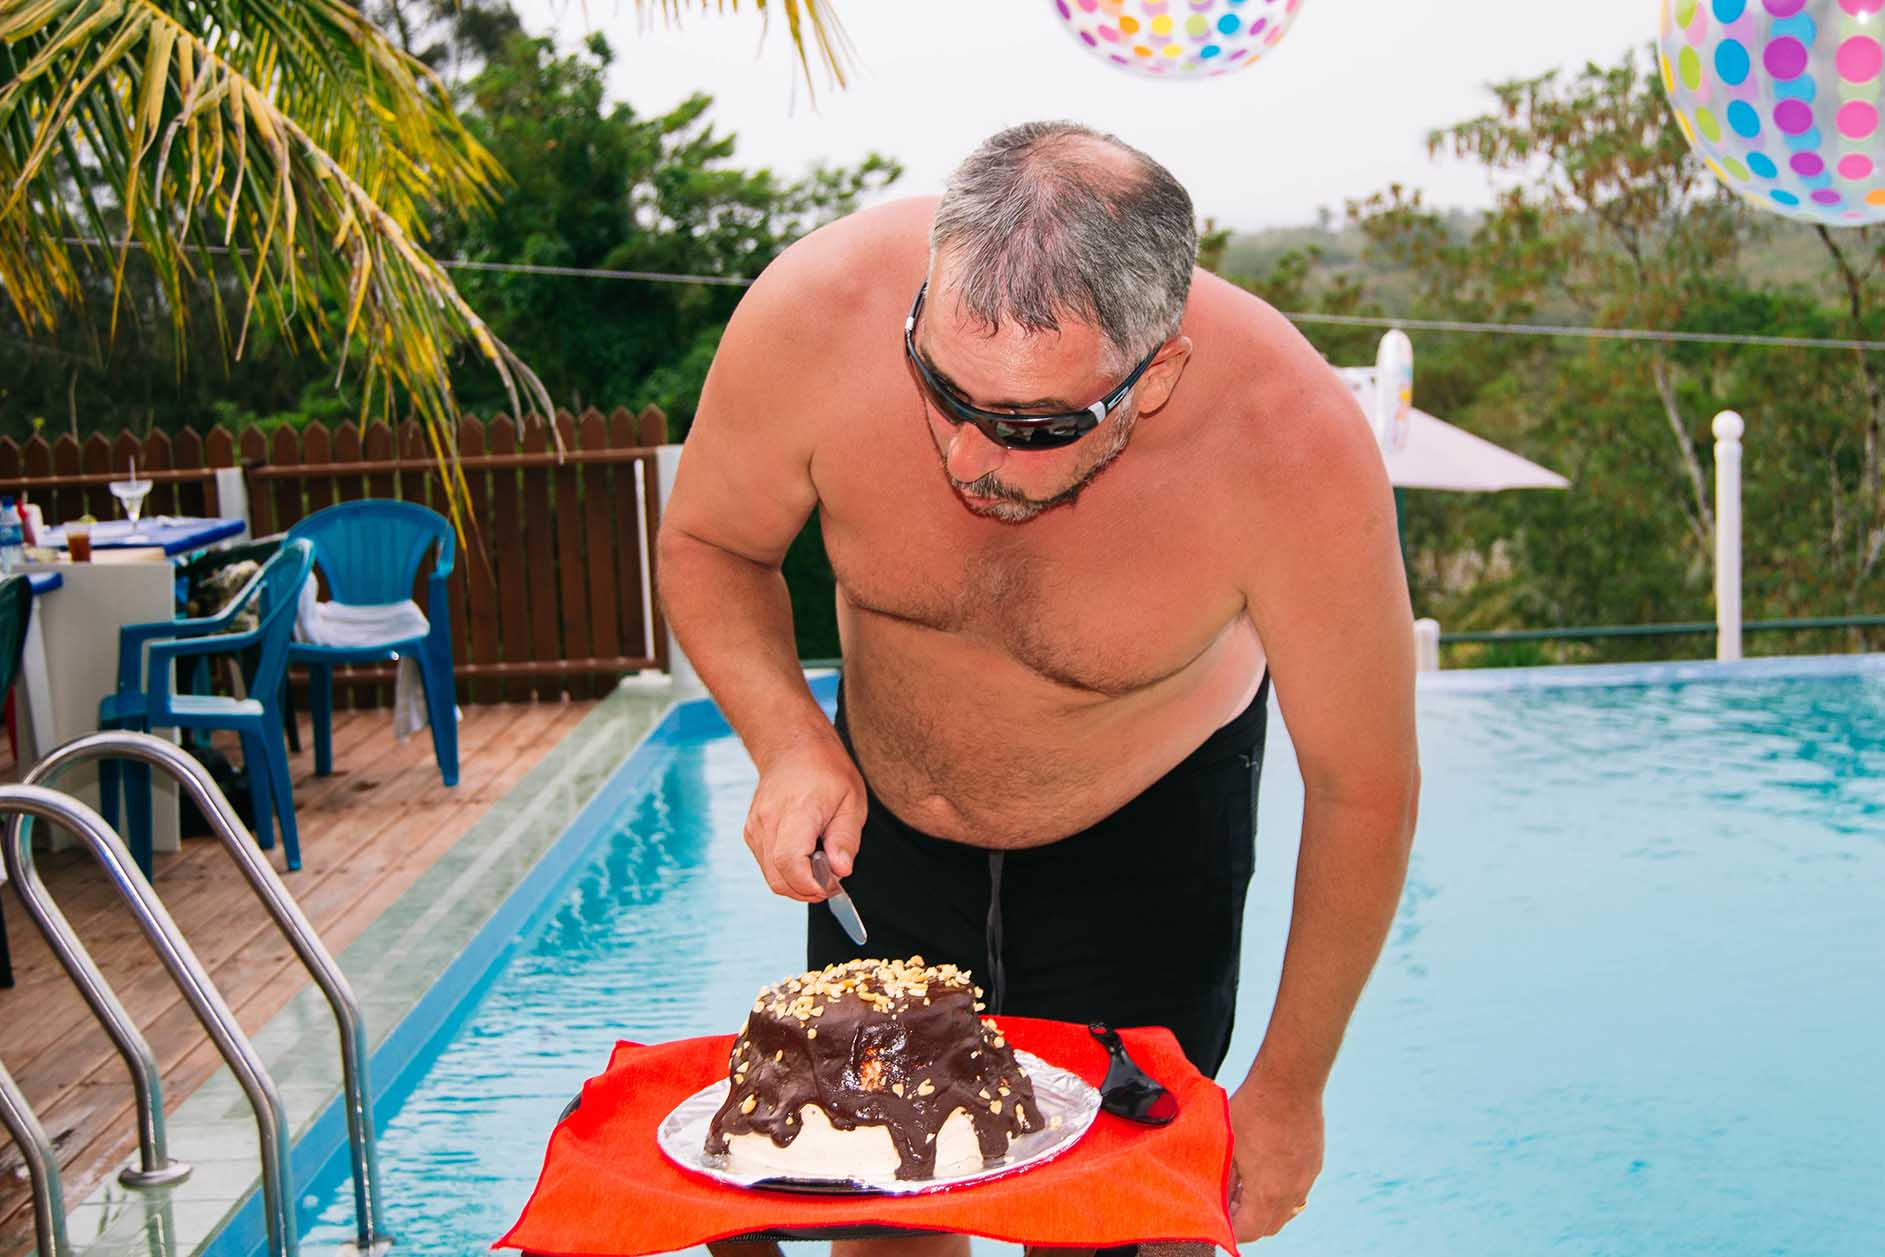 Guest-celebrating-his-birthday-at-the-pool